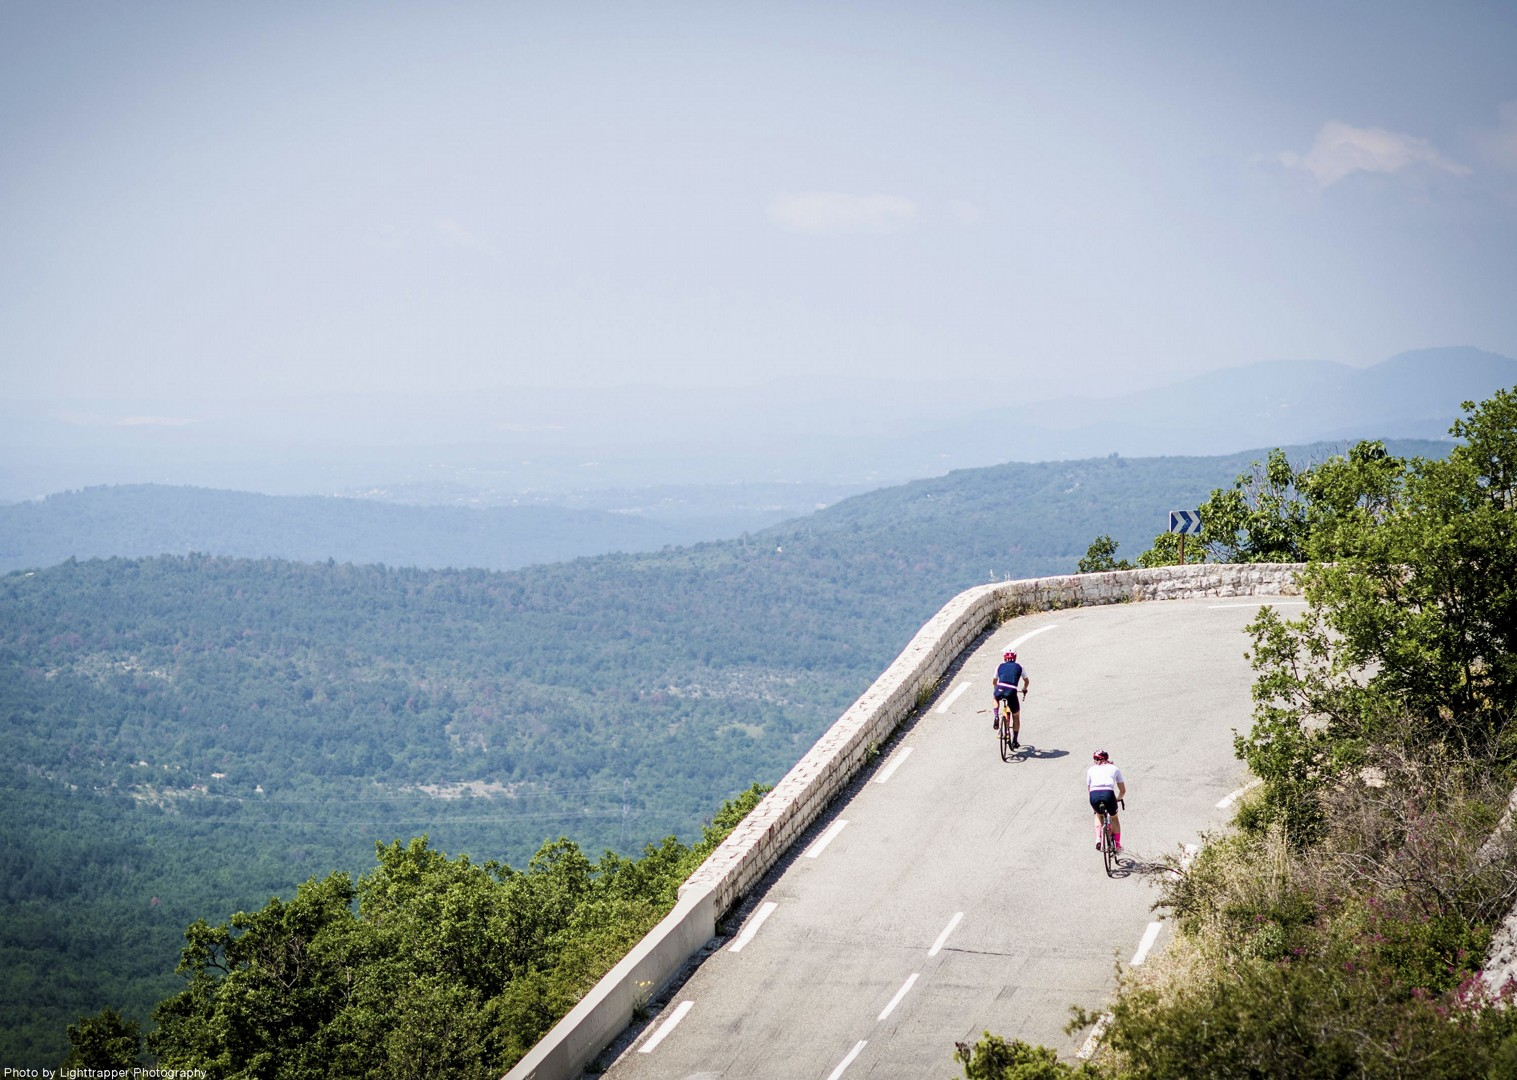 pro-cycling-col-de-la-madone-climb-cycling-road.jpg - France - Provence - Alpes Maritimes - Guided Road Cycling Holiday - Road Cycling